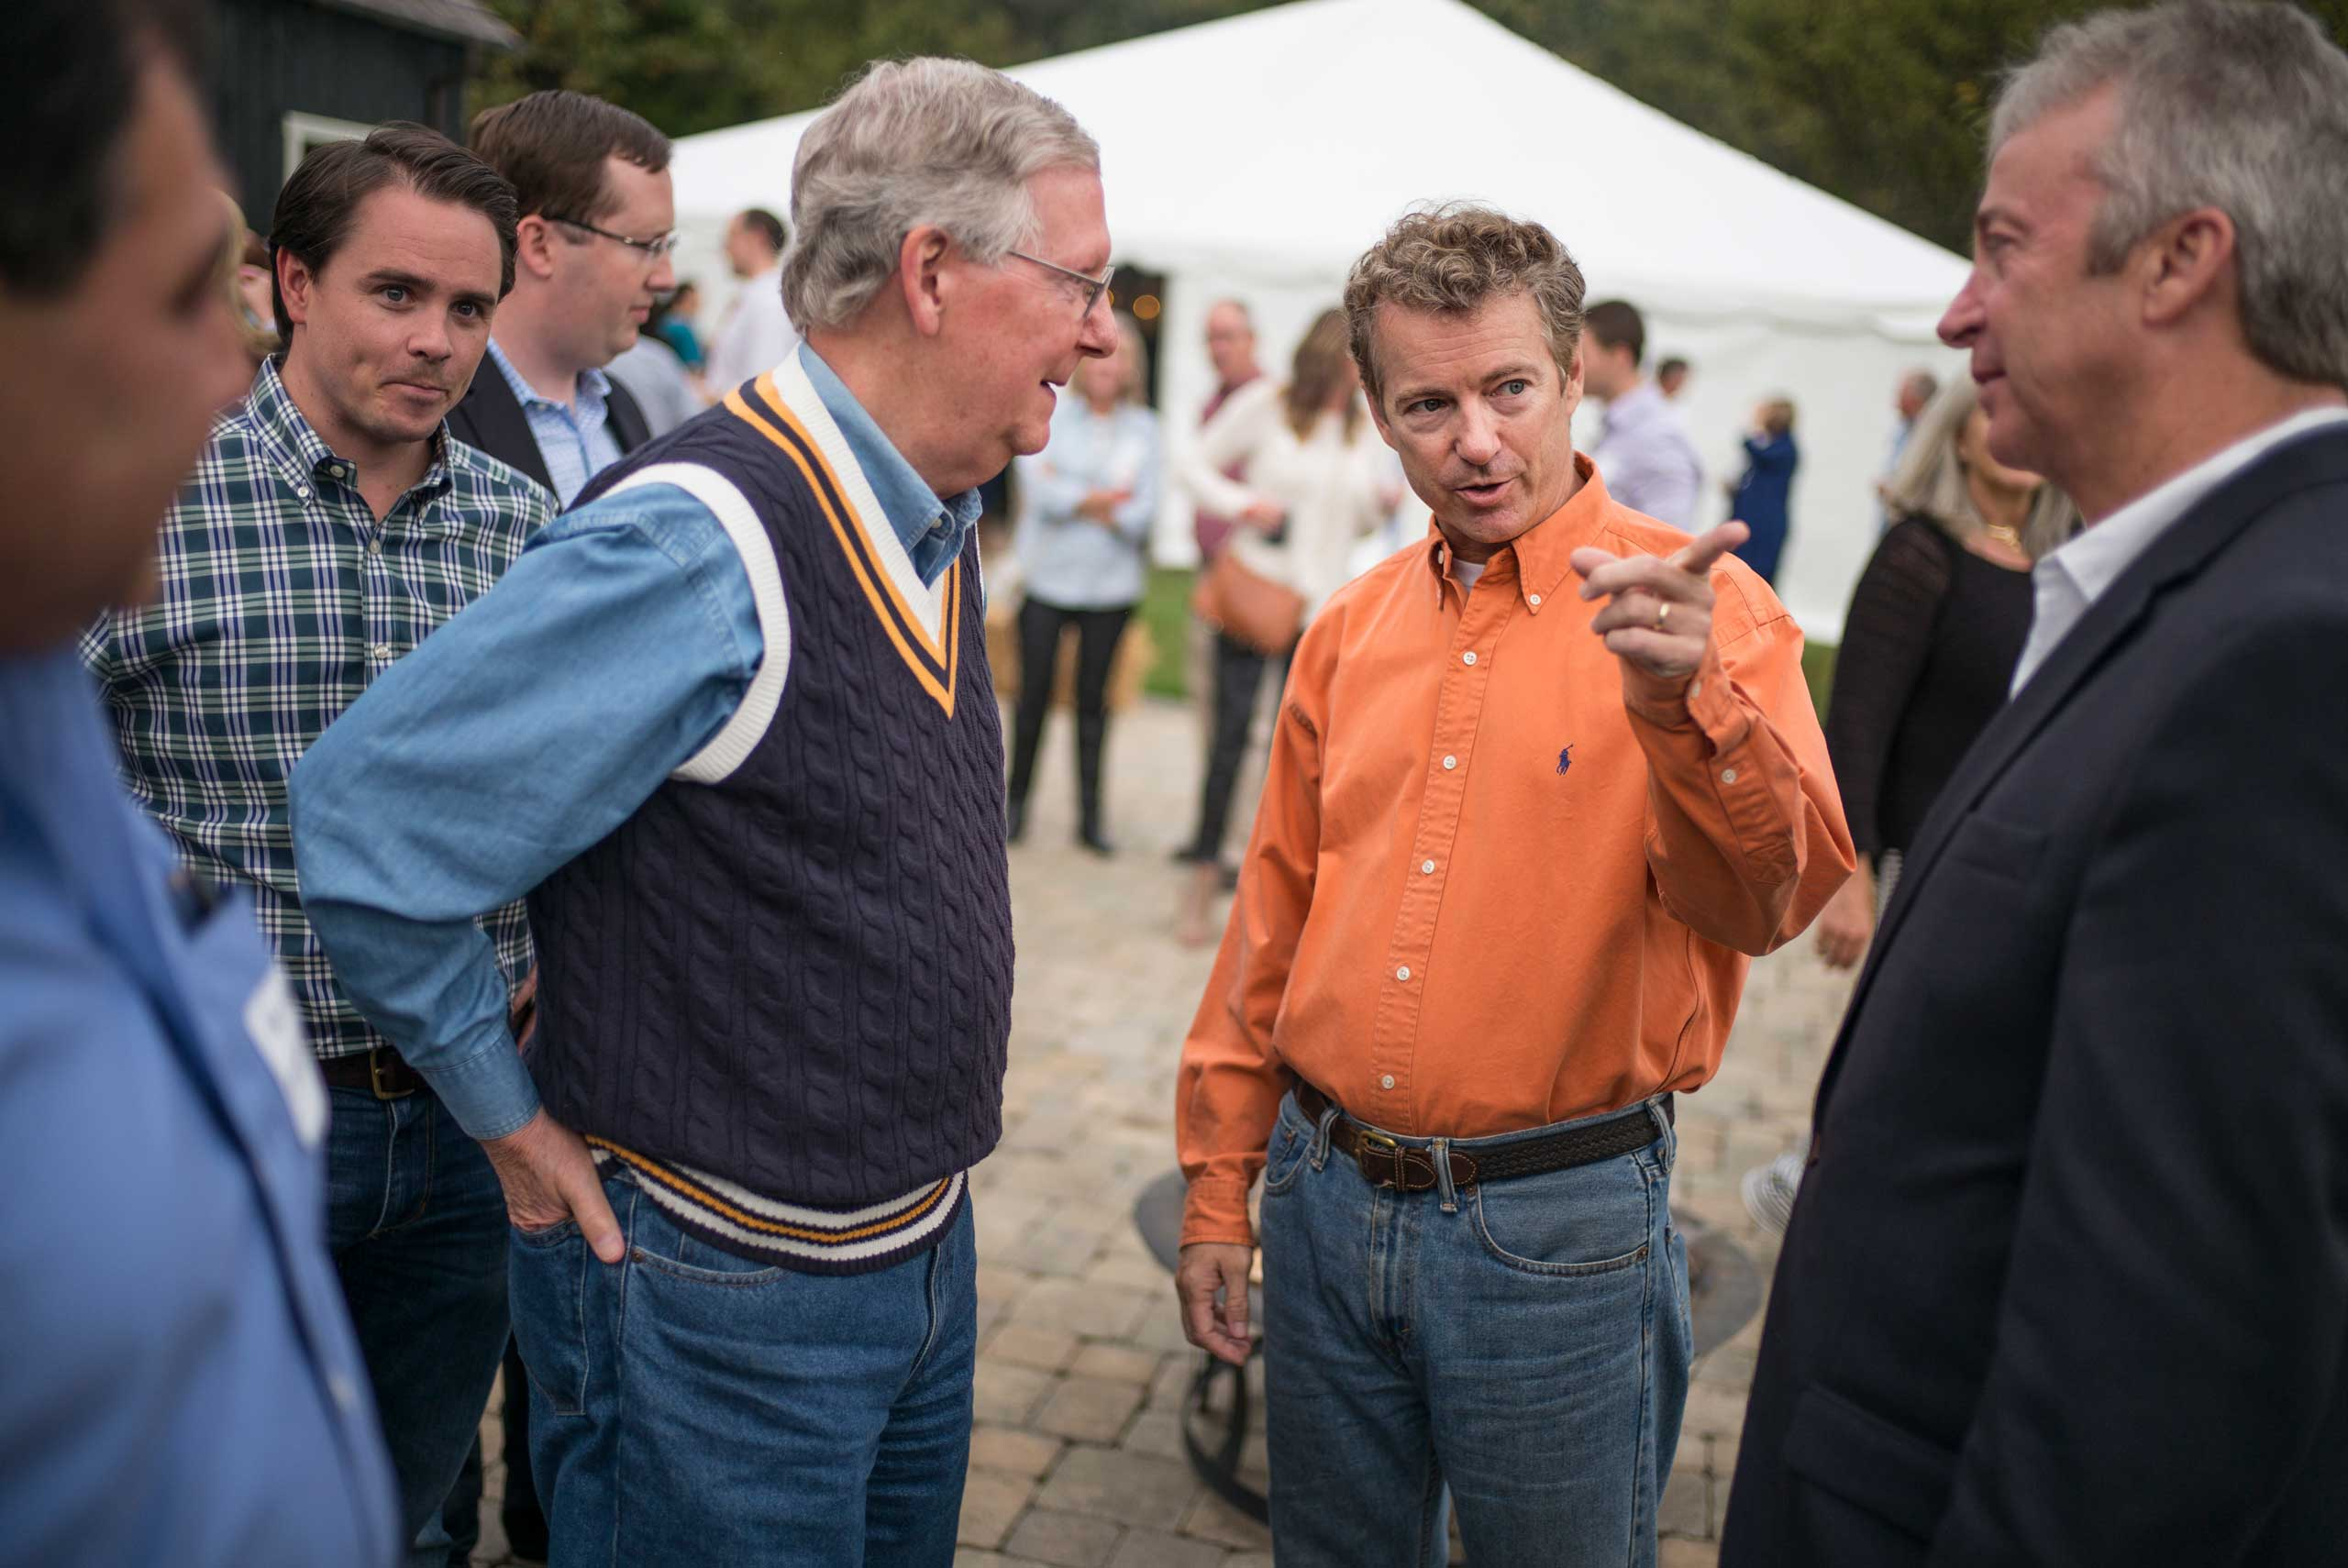 Senator Rand Paul and Senate minority leader Mitch McConnell attend a BBQ event at the Donnelly Barn in Bowling Green, Ky. on Oct. 12th, 2014.